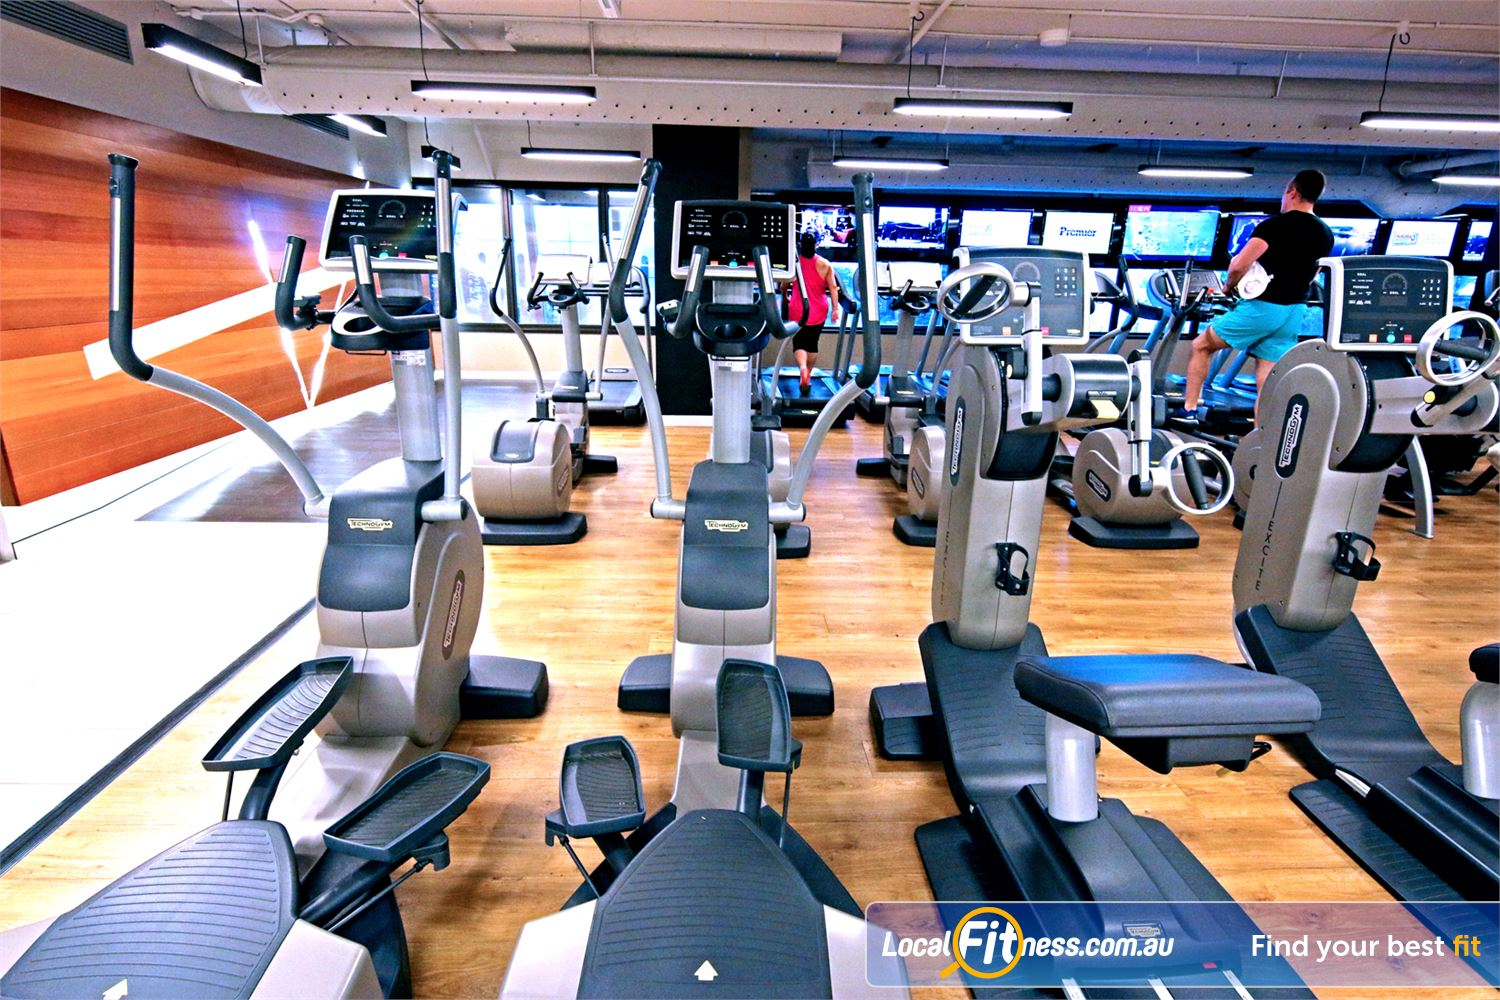 Fitness First Elizabeth St Brisbane The best cardio equipment with built in entertainment screens.